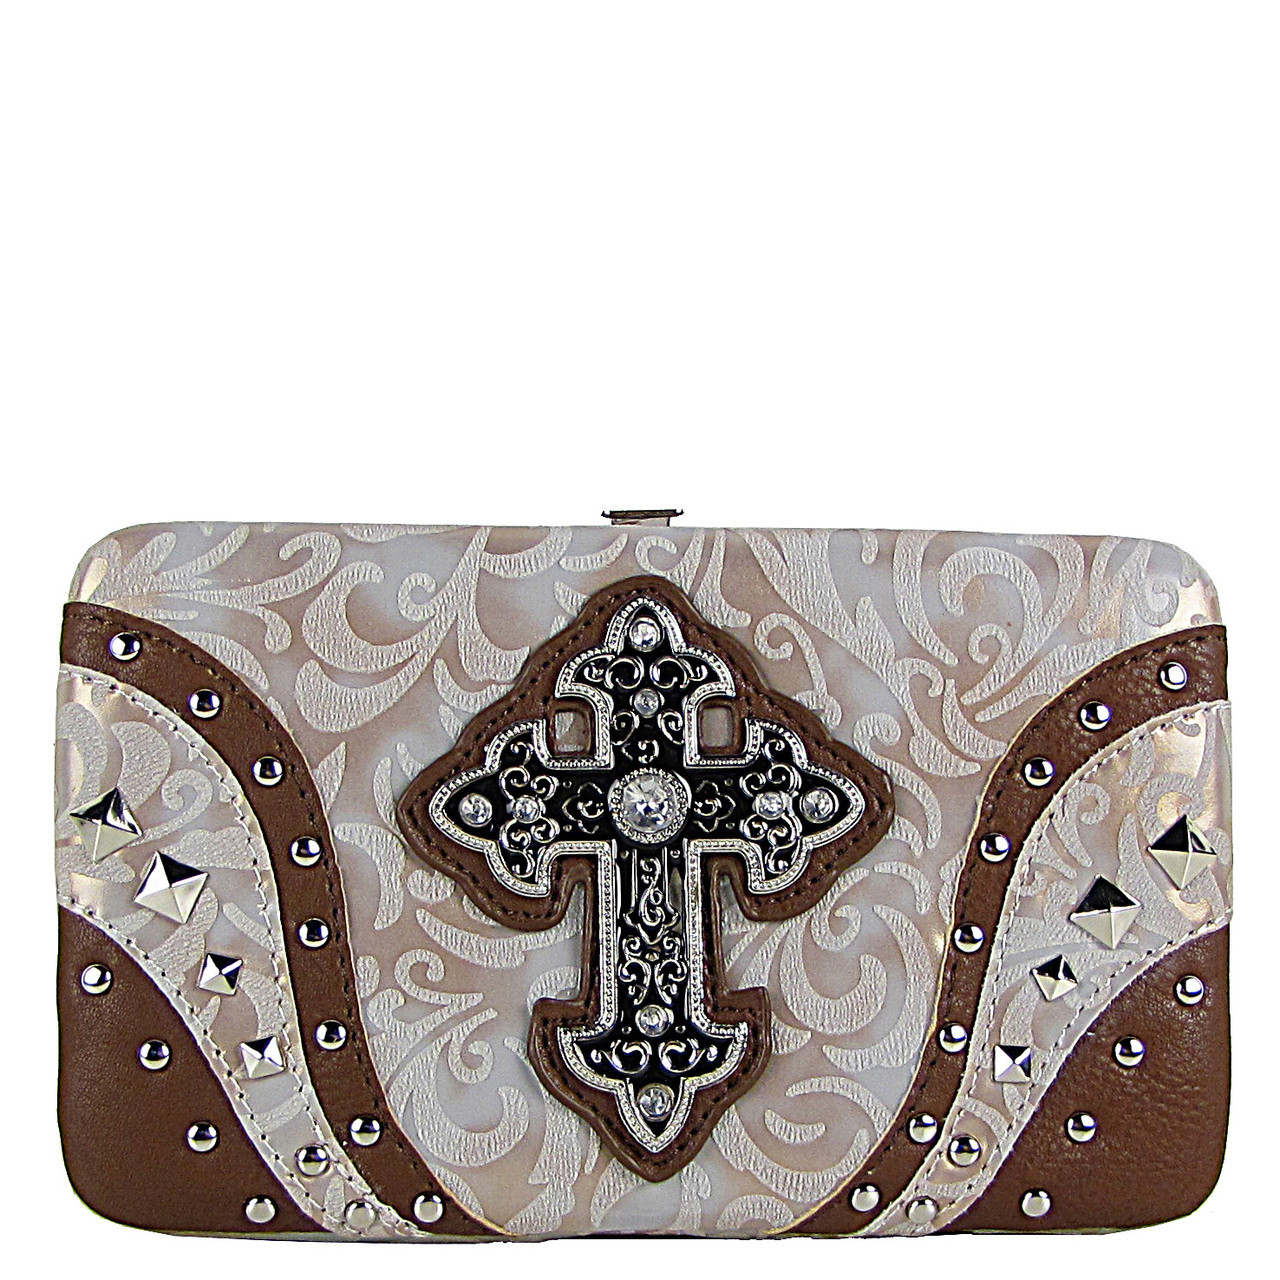 BEIGE STUDDED RHINESTONE TOOLED CROSS LOOK FLAT THICK WALLET FW2-04113BEI